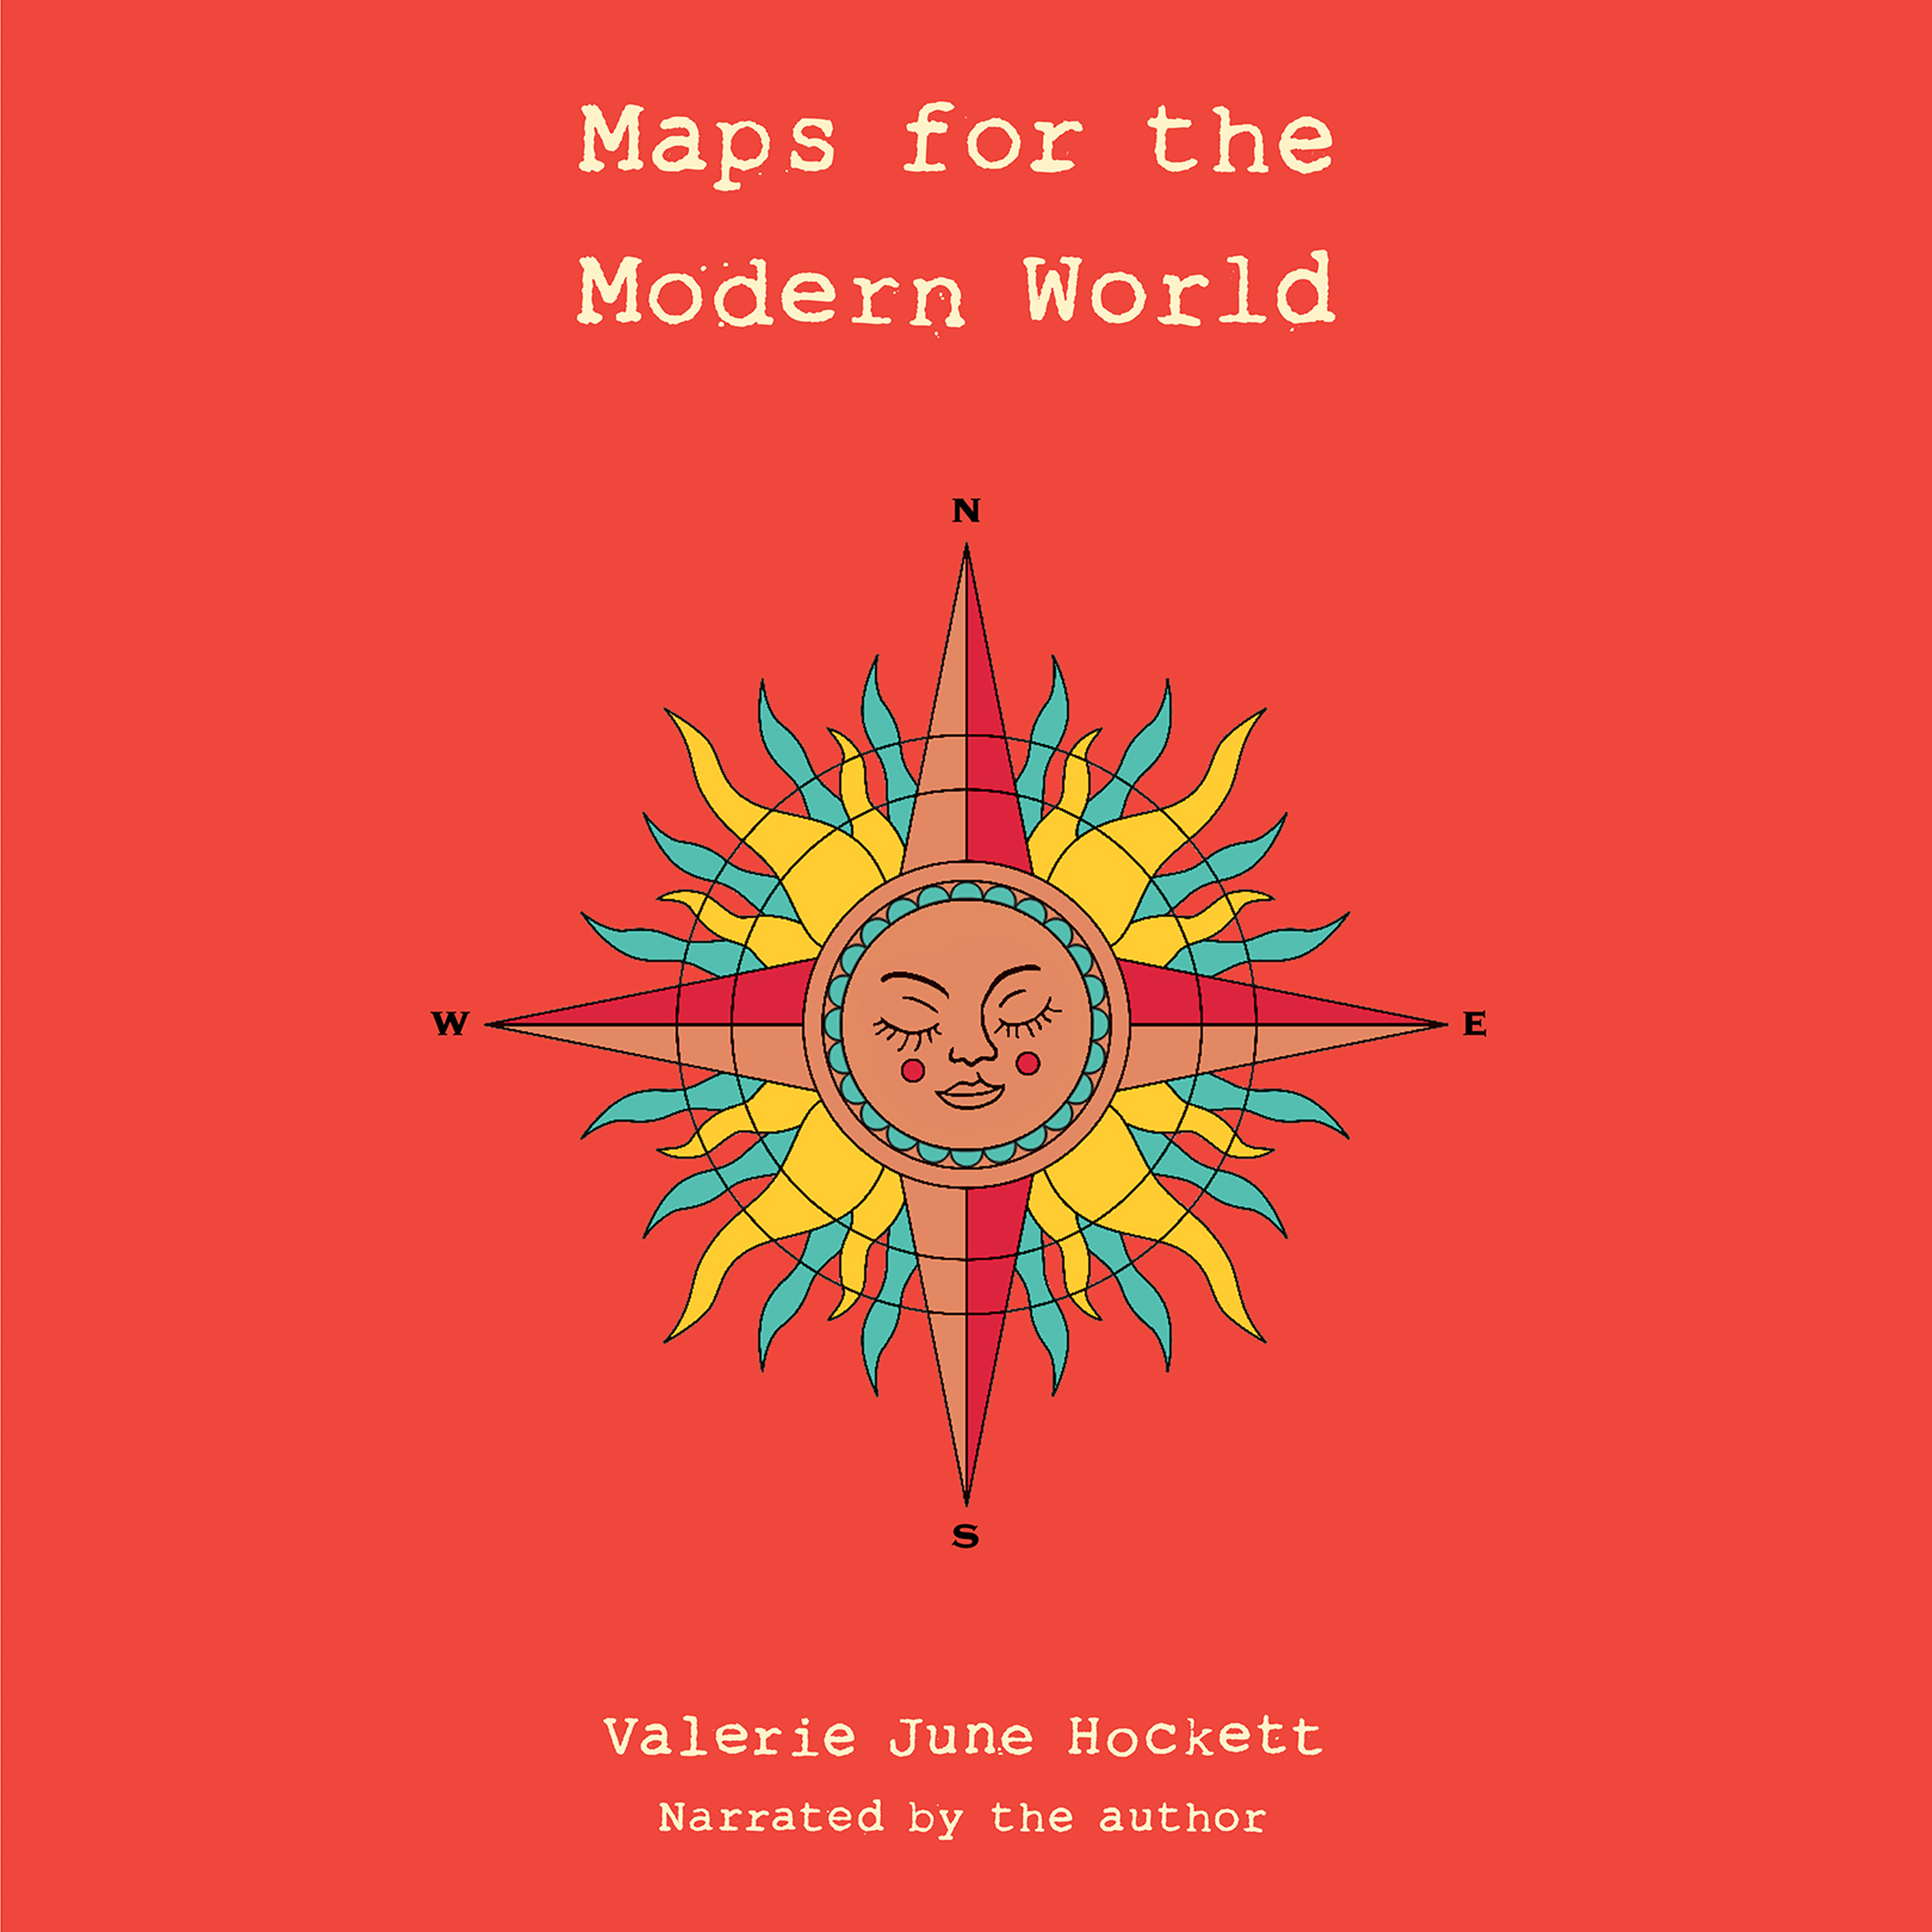 Maps for the Modern World